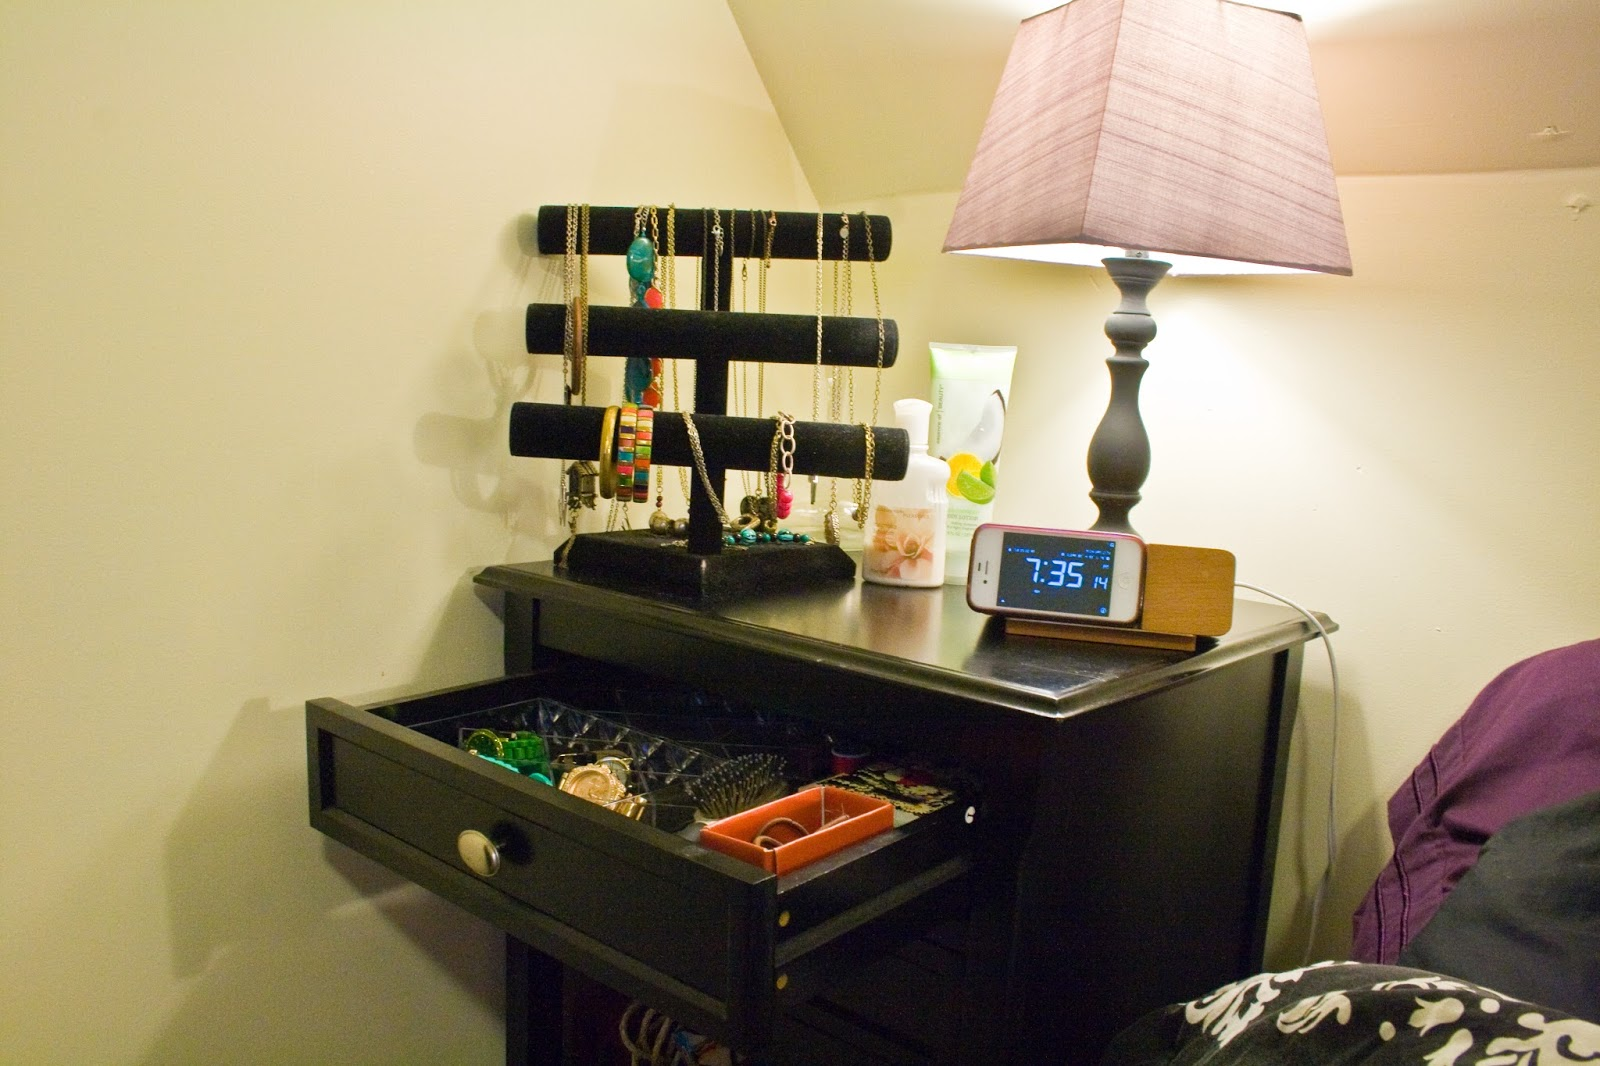 Five sixteenths blog wednesday decor jewelry night - How to decorate a nightstand ...